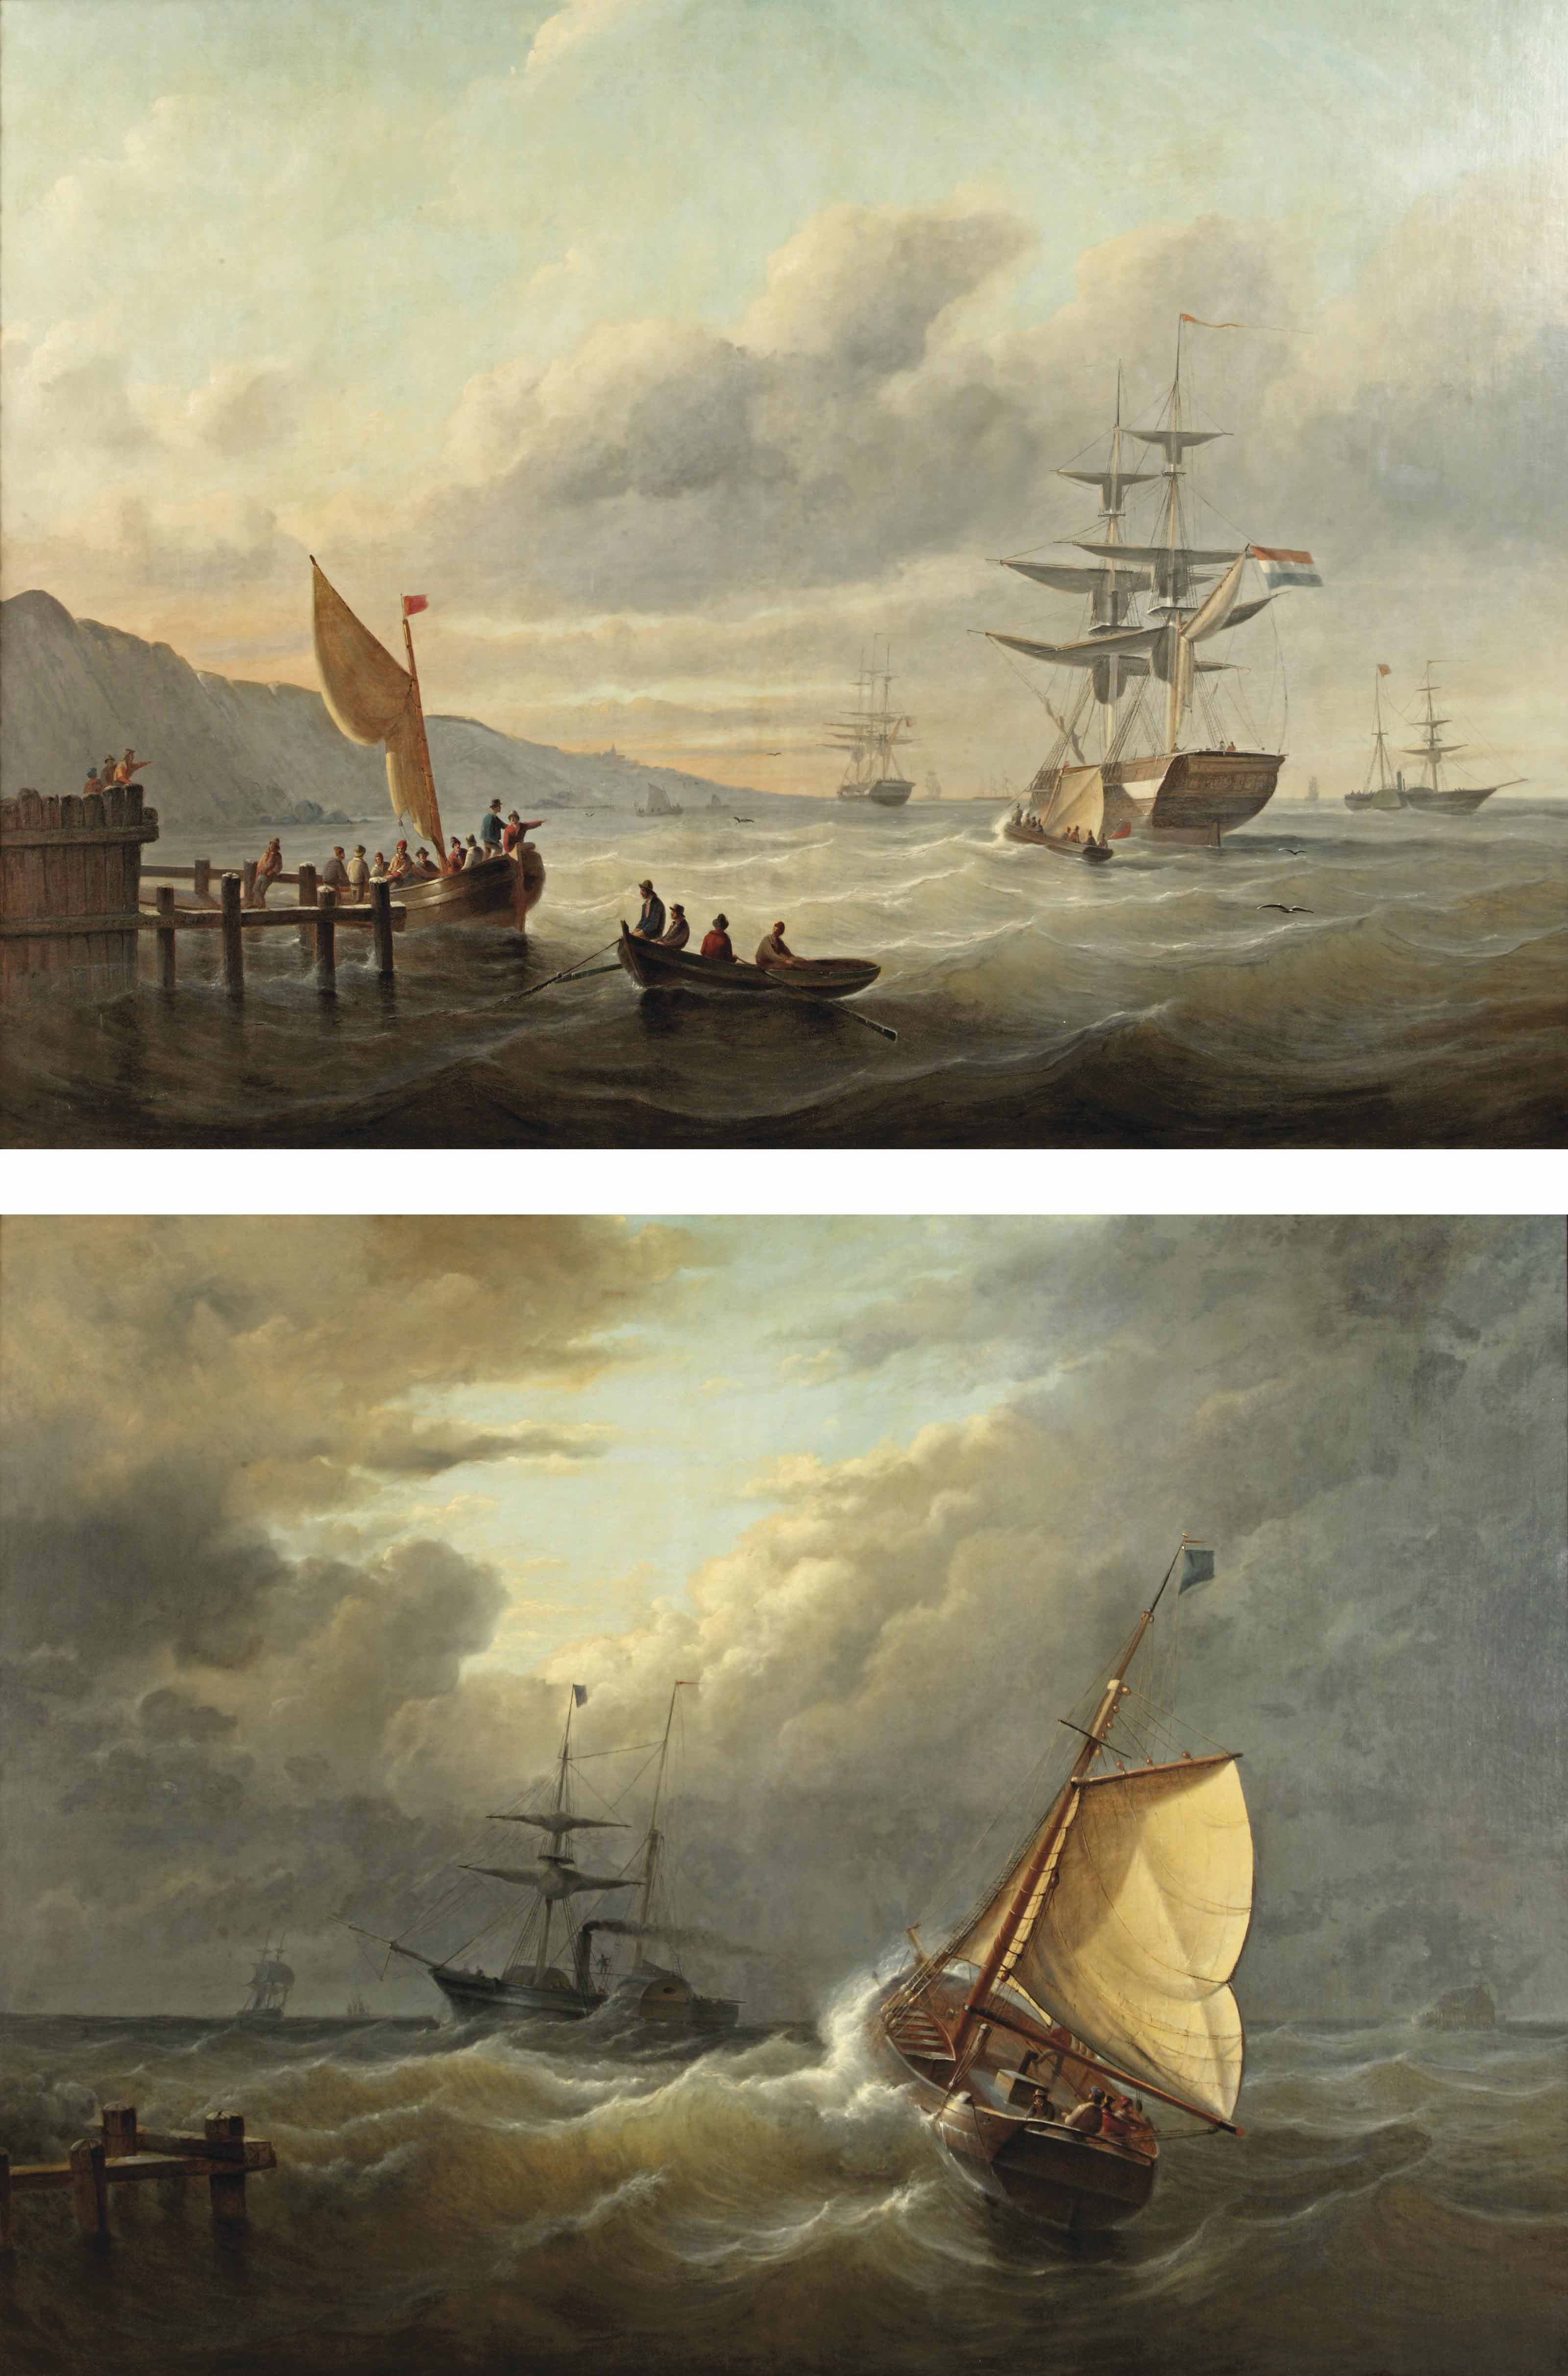 Dutch vessels in a sunlit bay; and Ships caught in rough waters